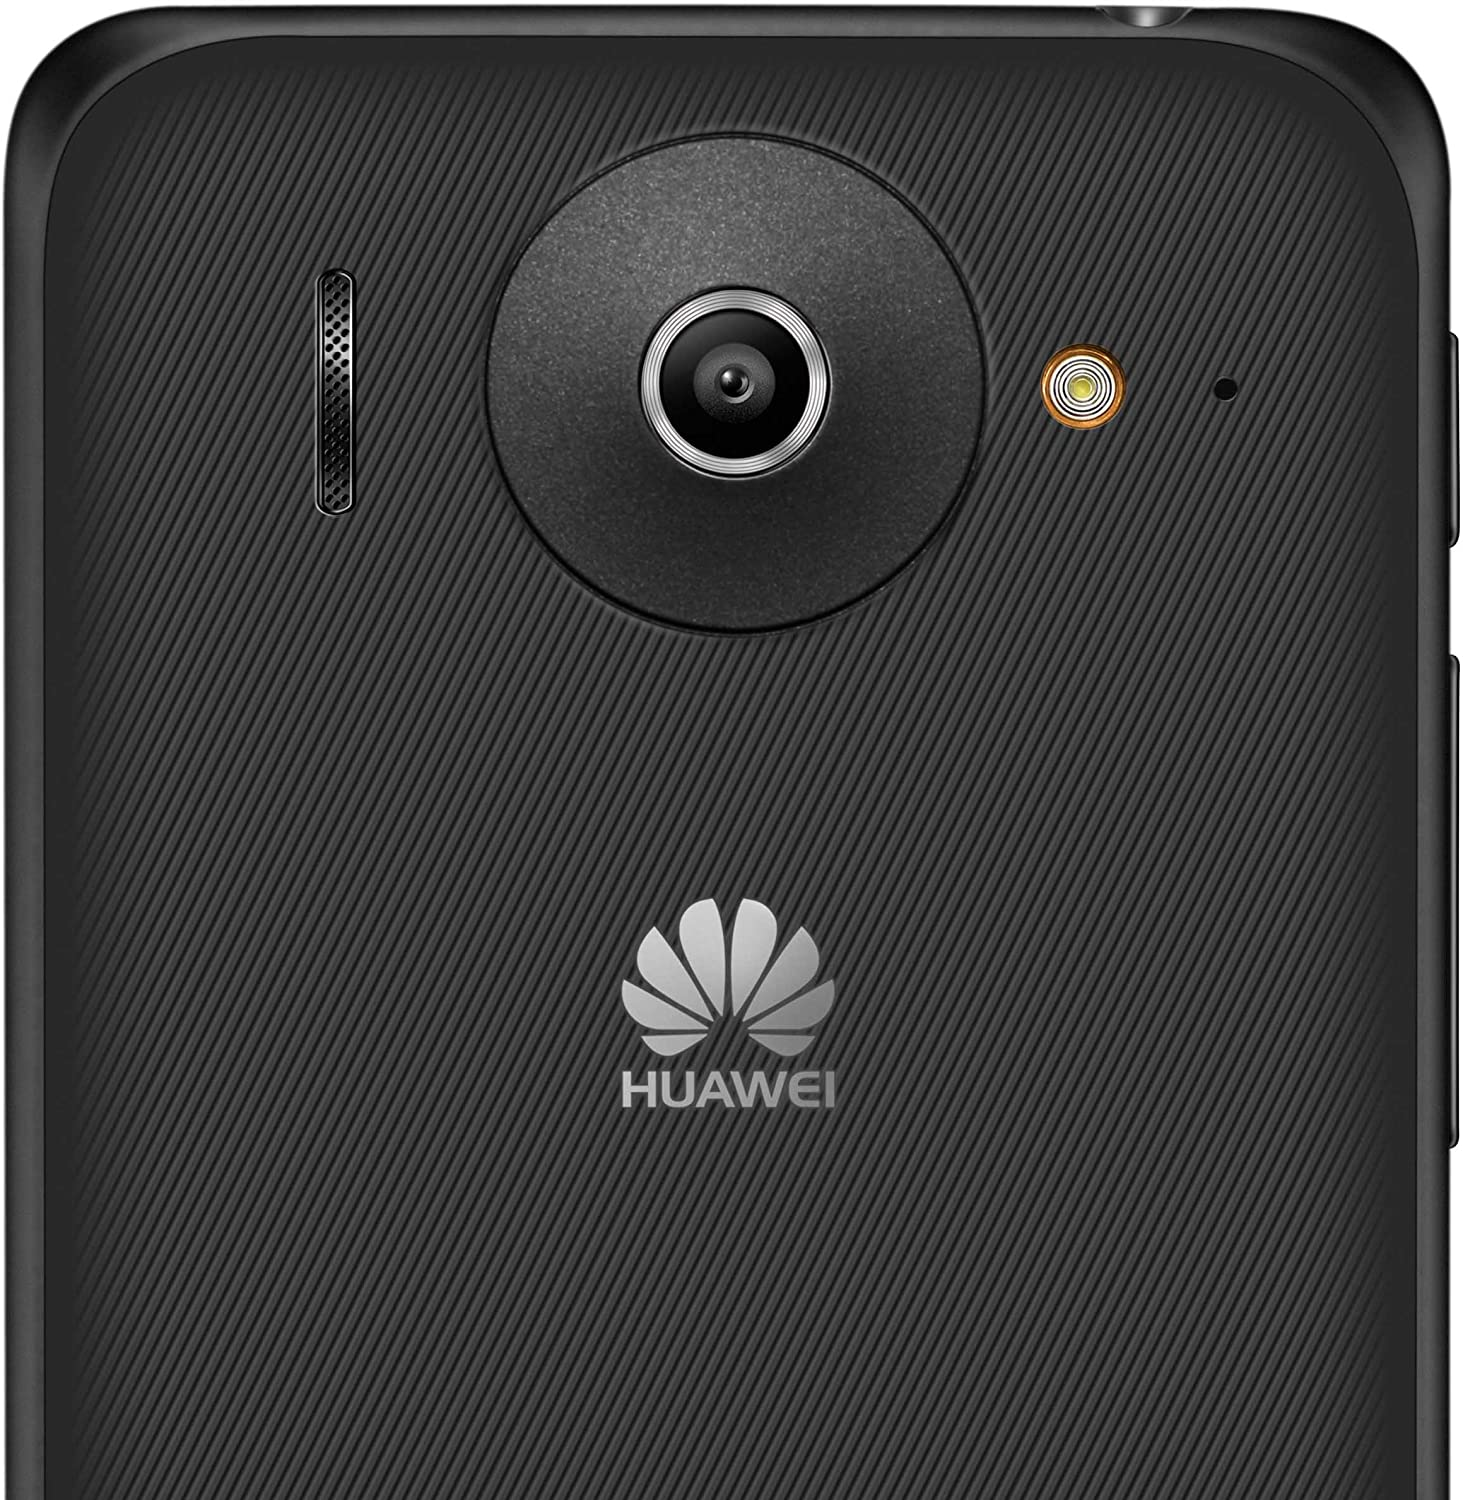 Huawei Ascend G510 - Smartphone libre Android (pantalla 4.5 ...